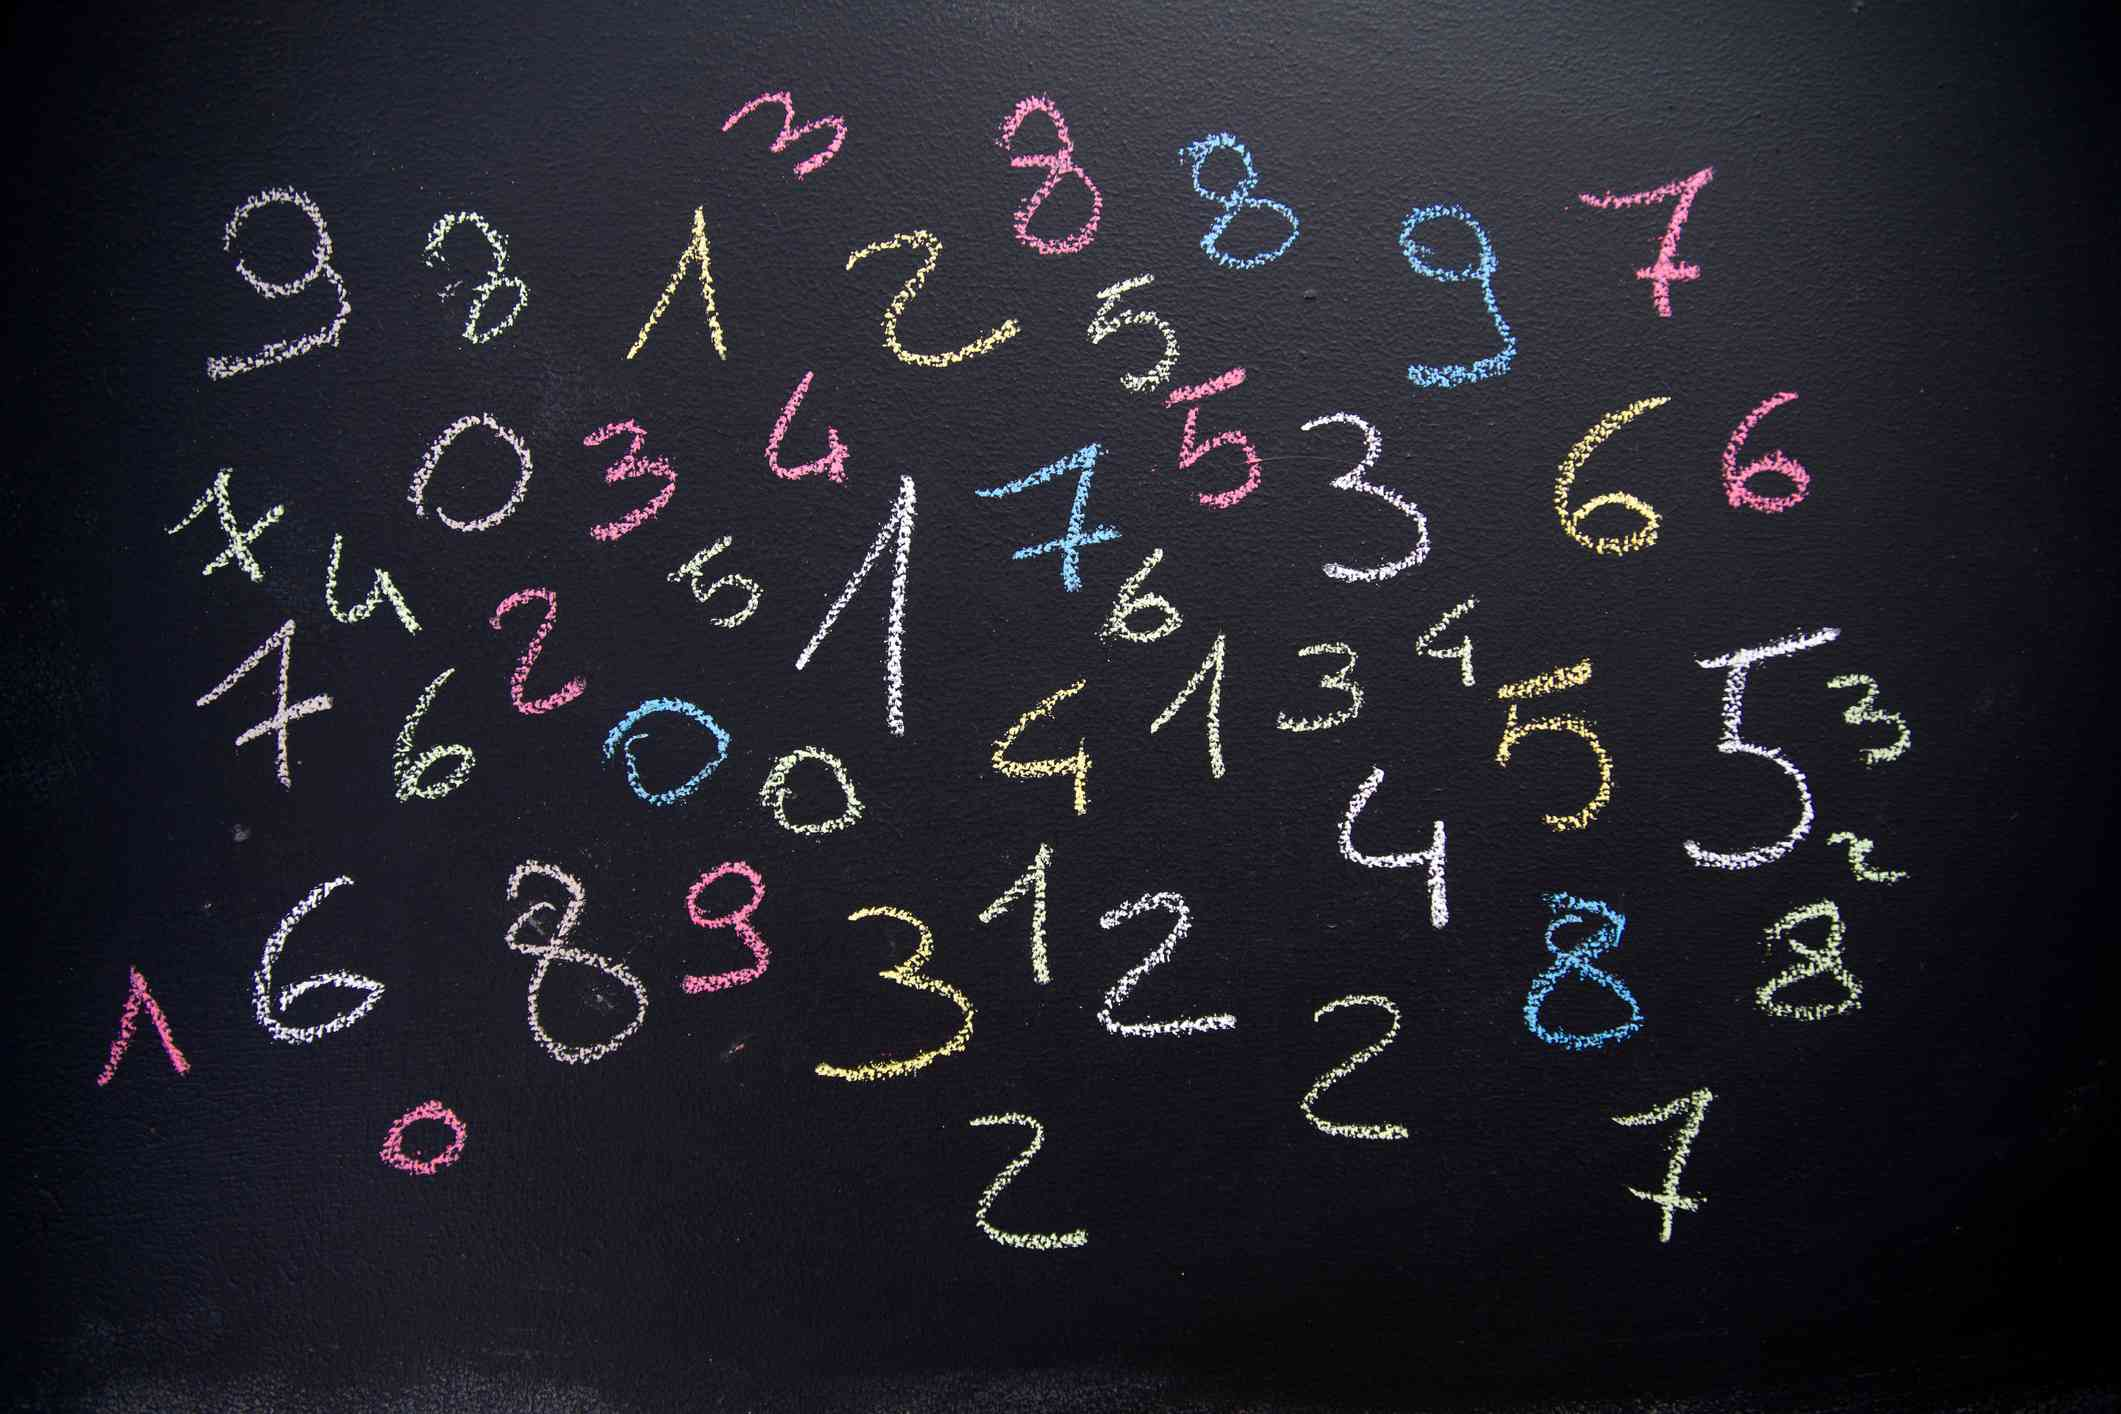 How To Calculate Your Numerology Birth Number